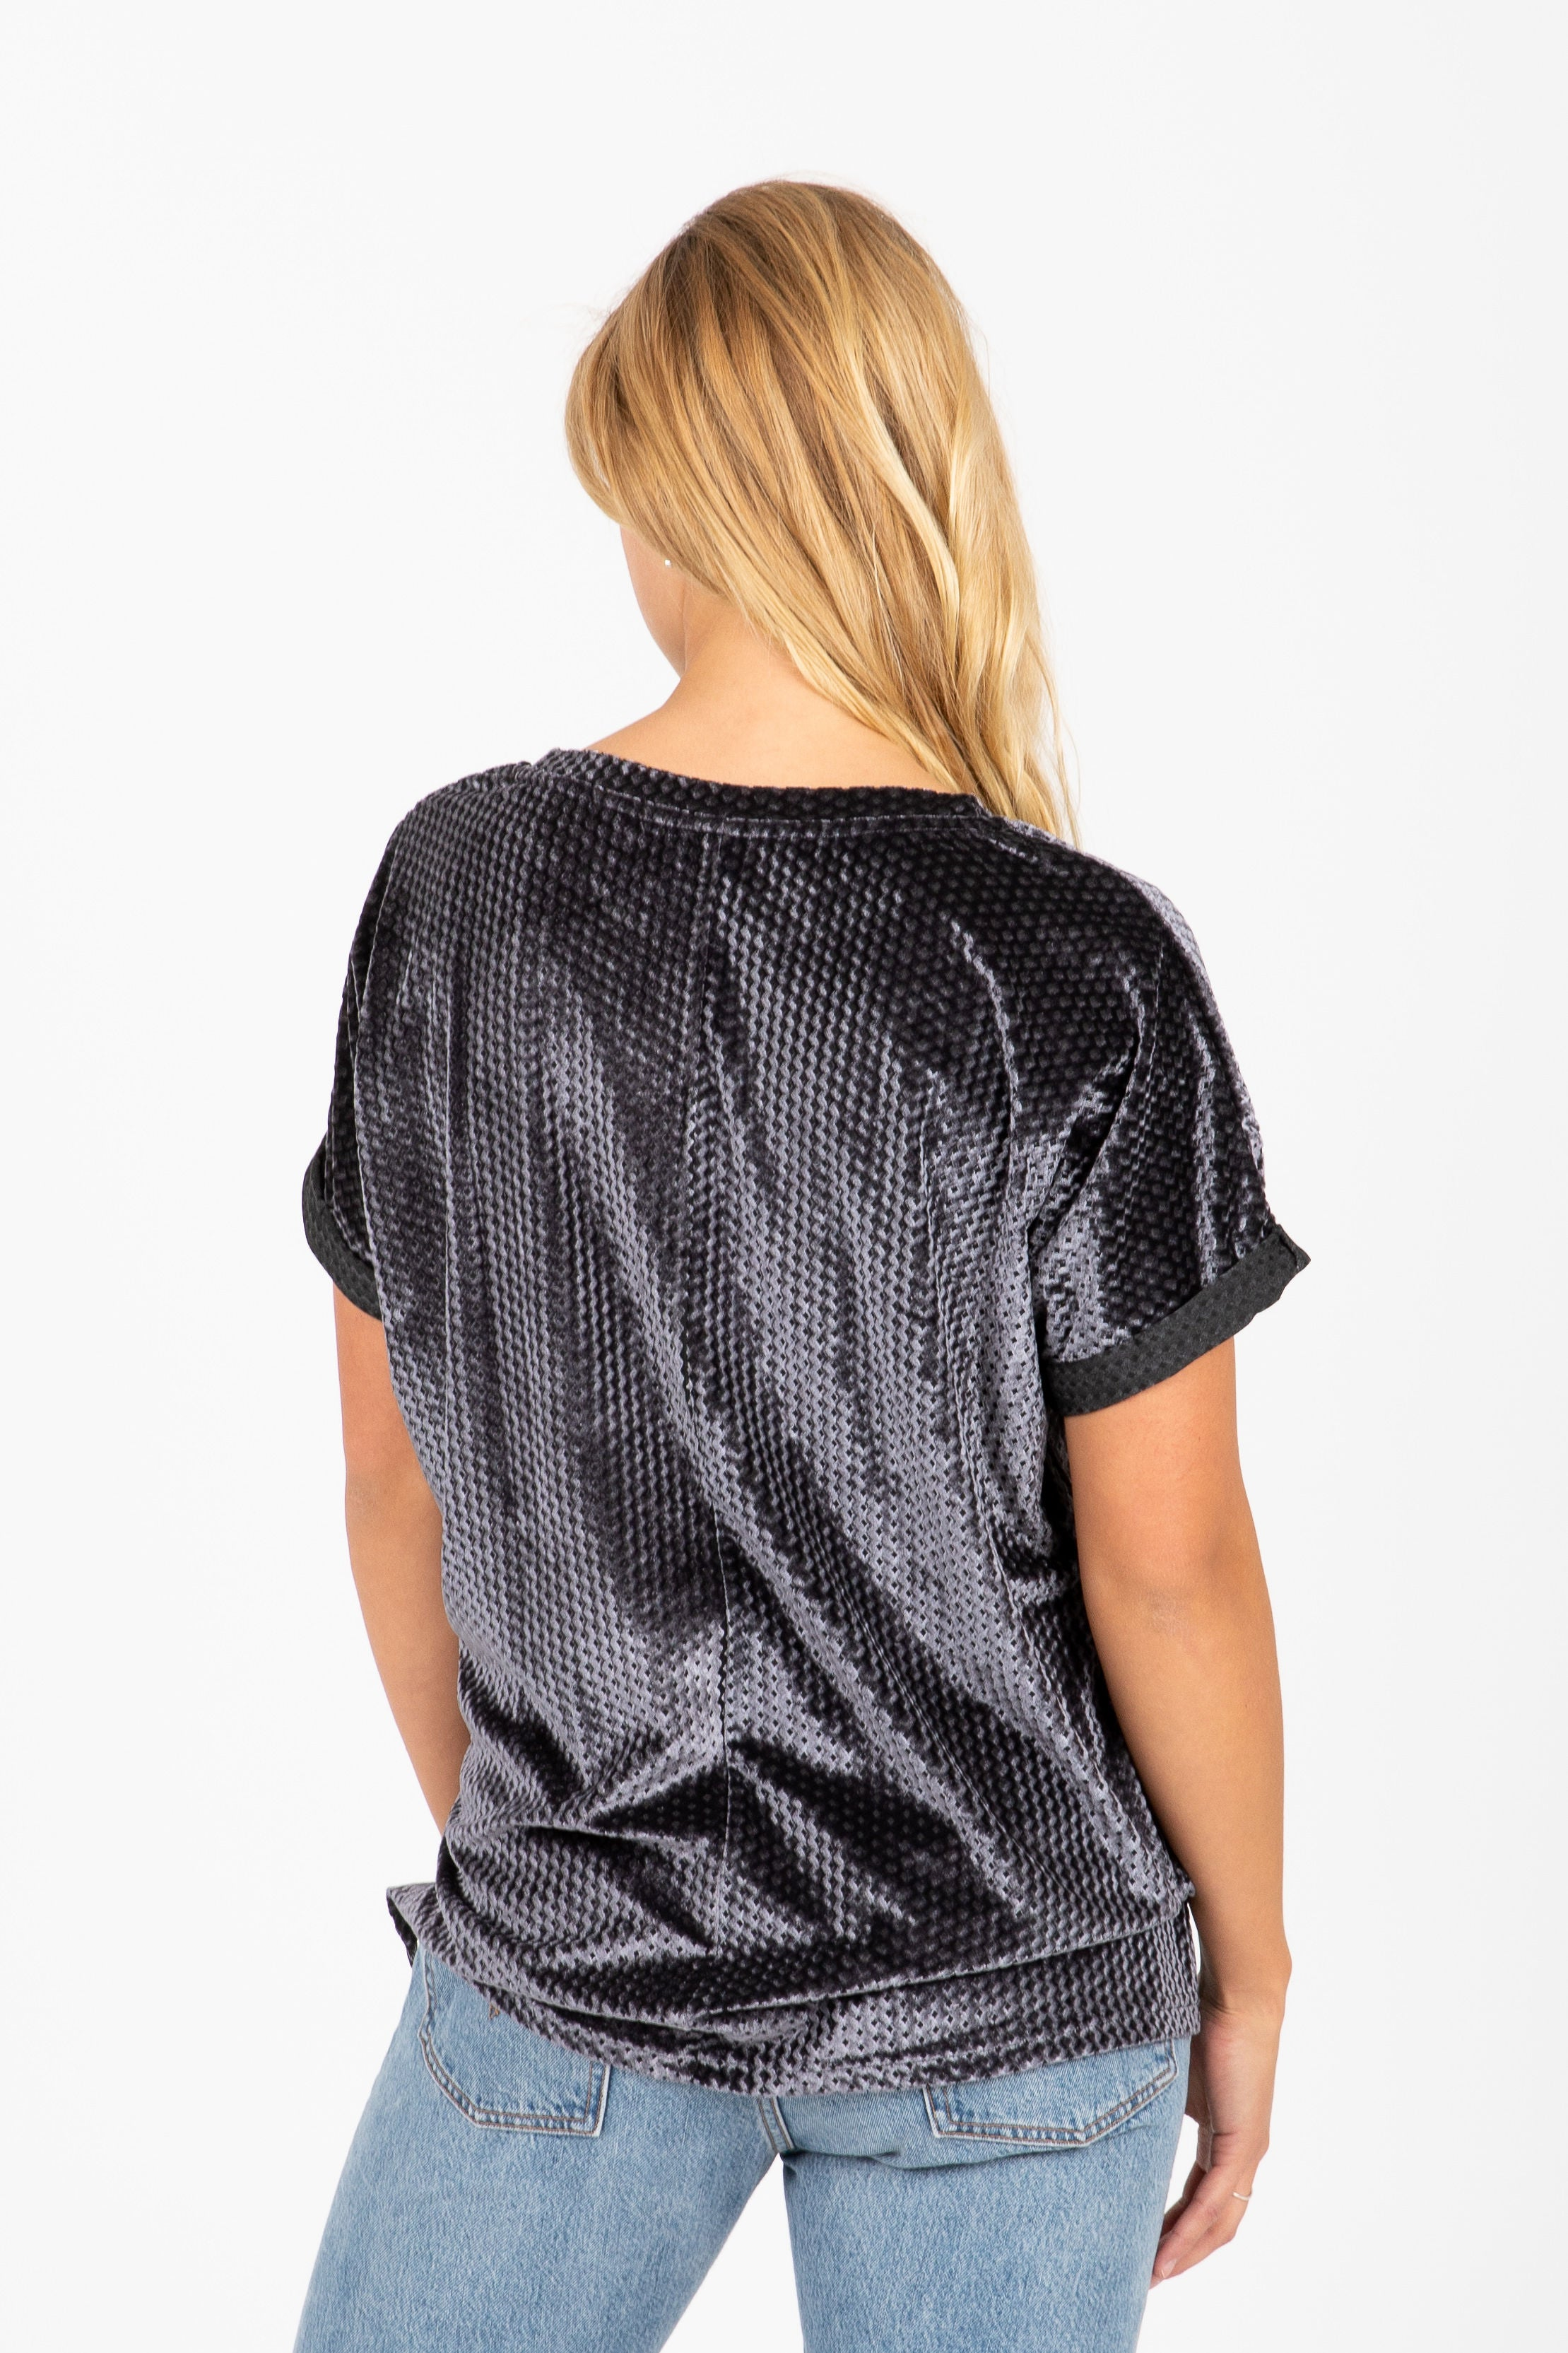 The Lion Reflective Blouse in Slate